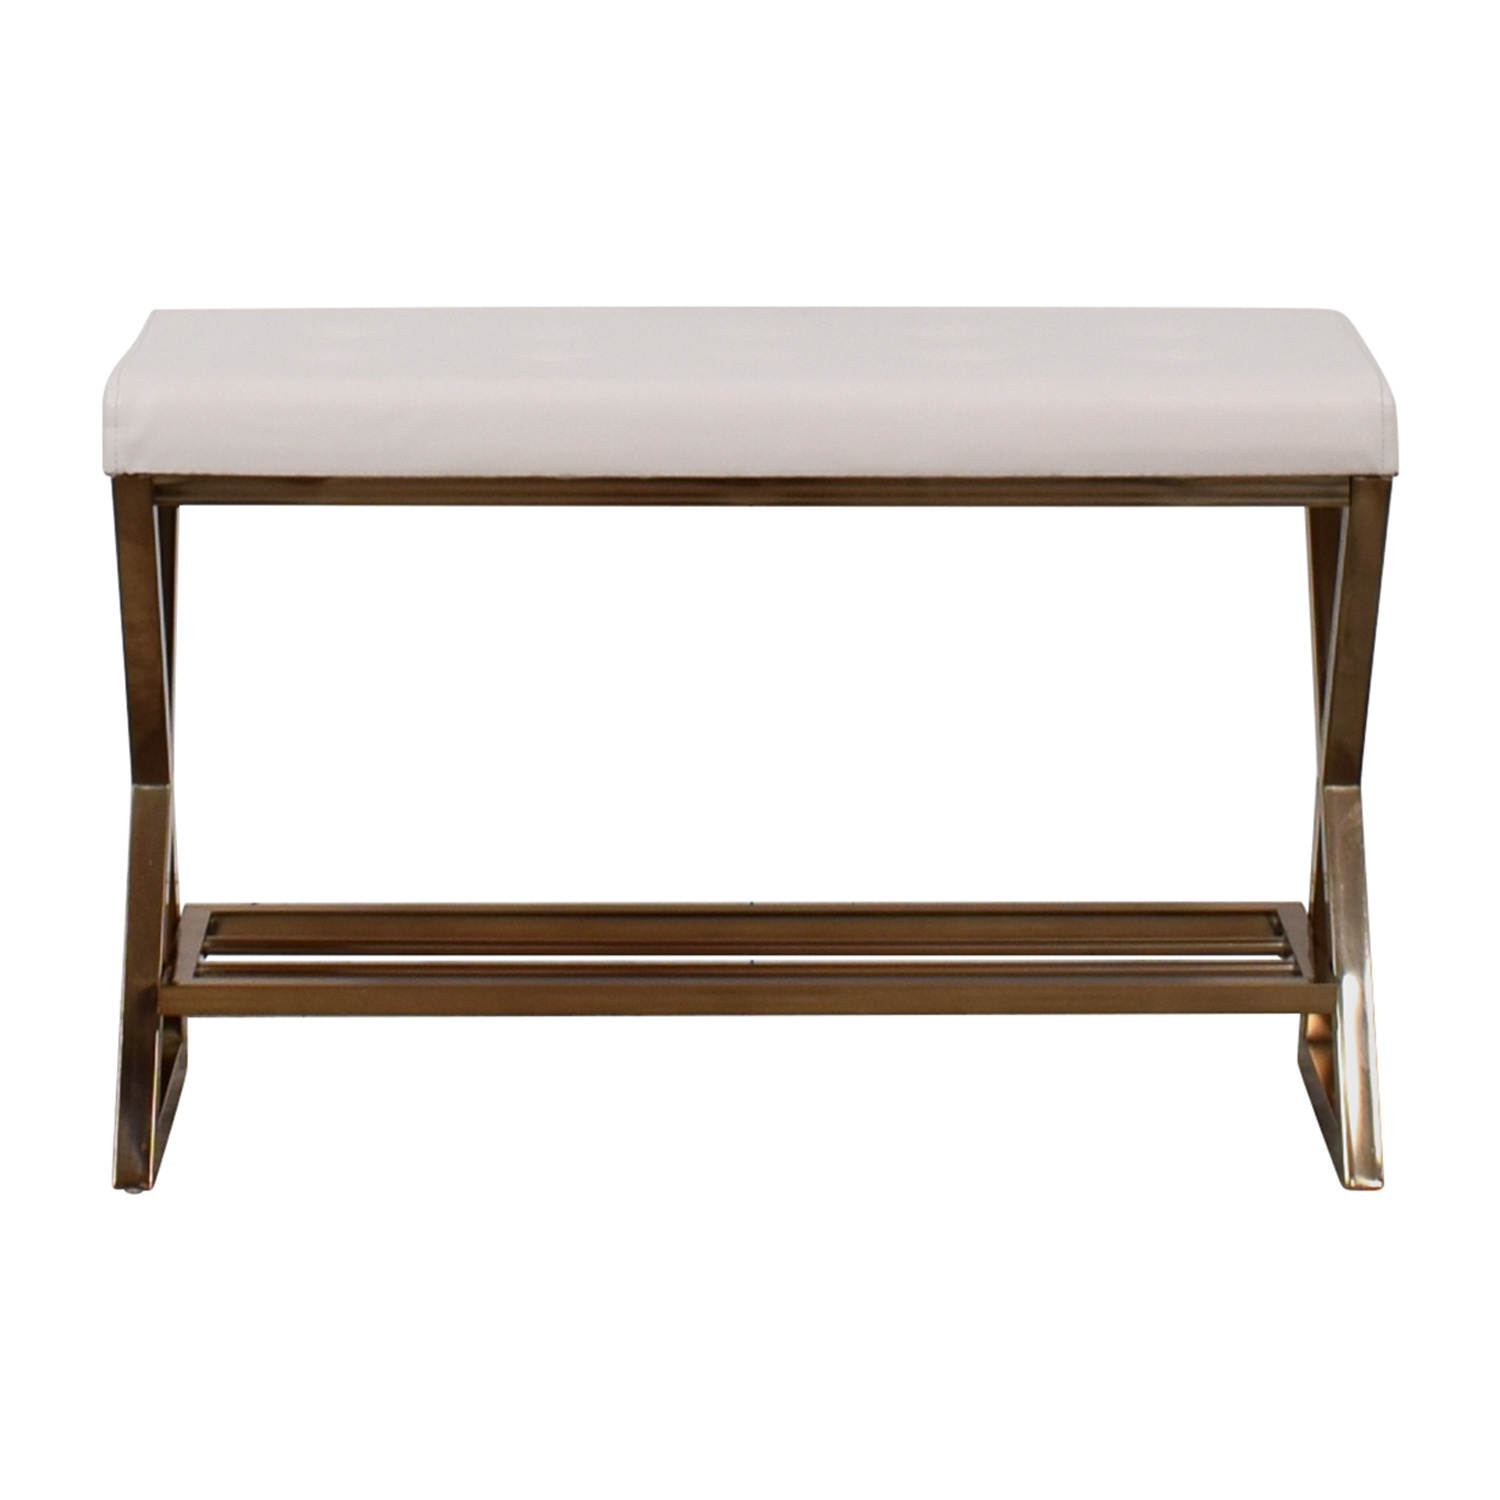 shop Furniture of America White Tufted Bench Furniture of America Ottomans